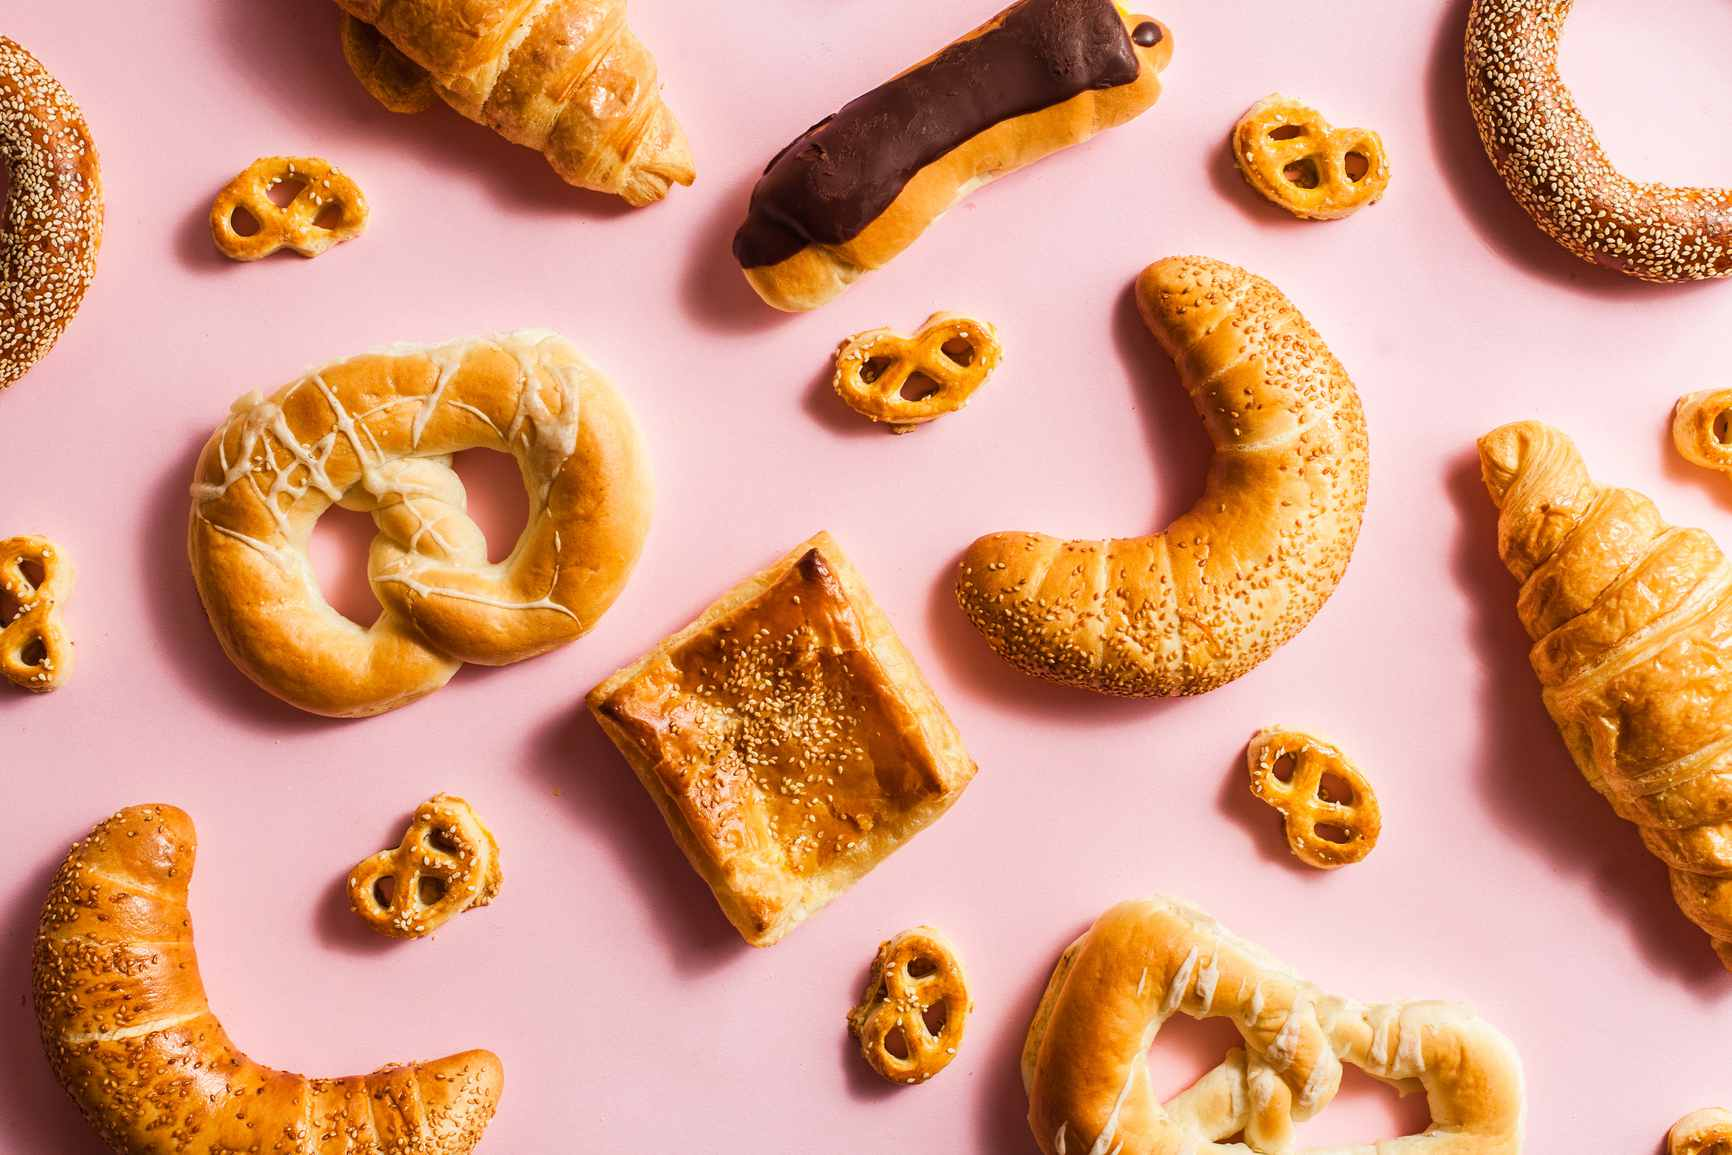 pretzles, bread, and other carb-filled pastries